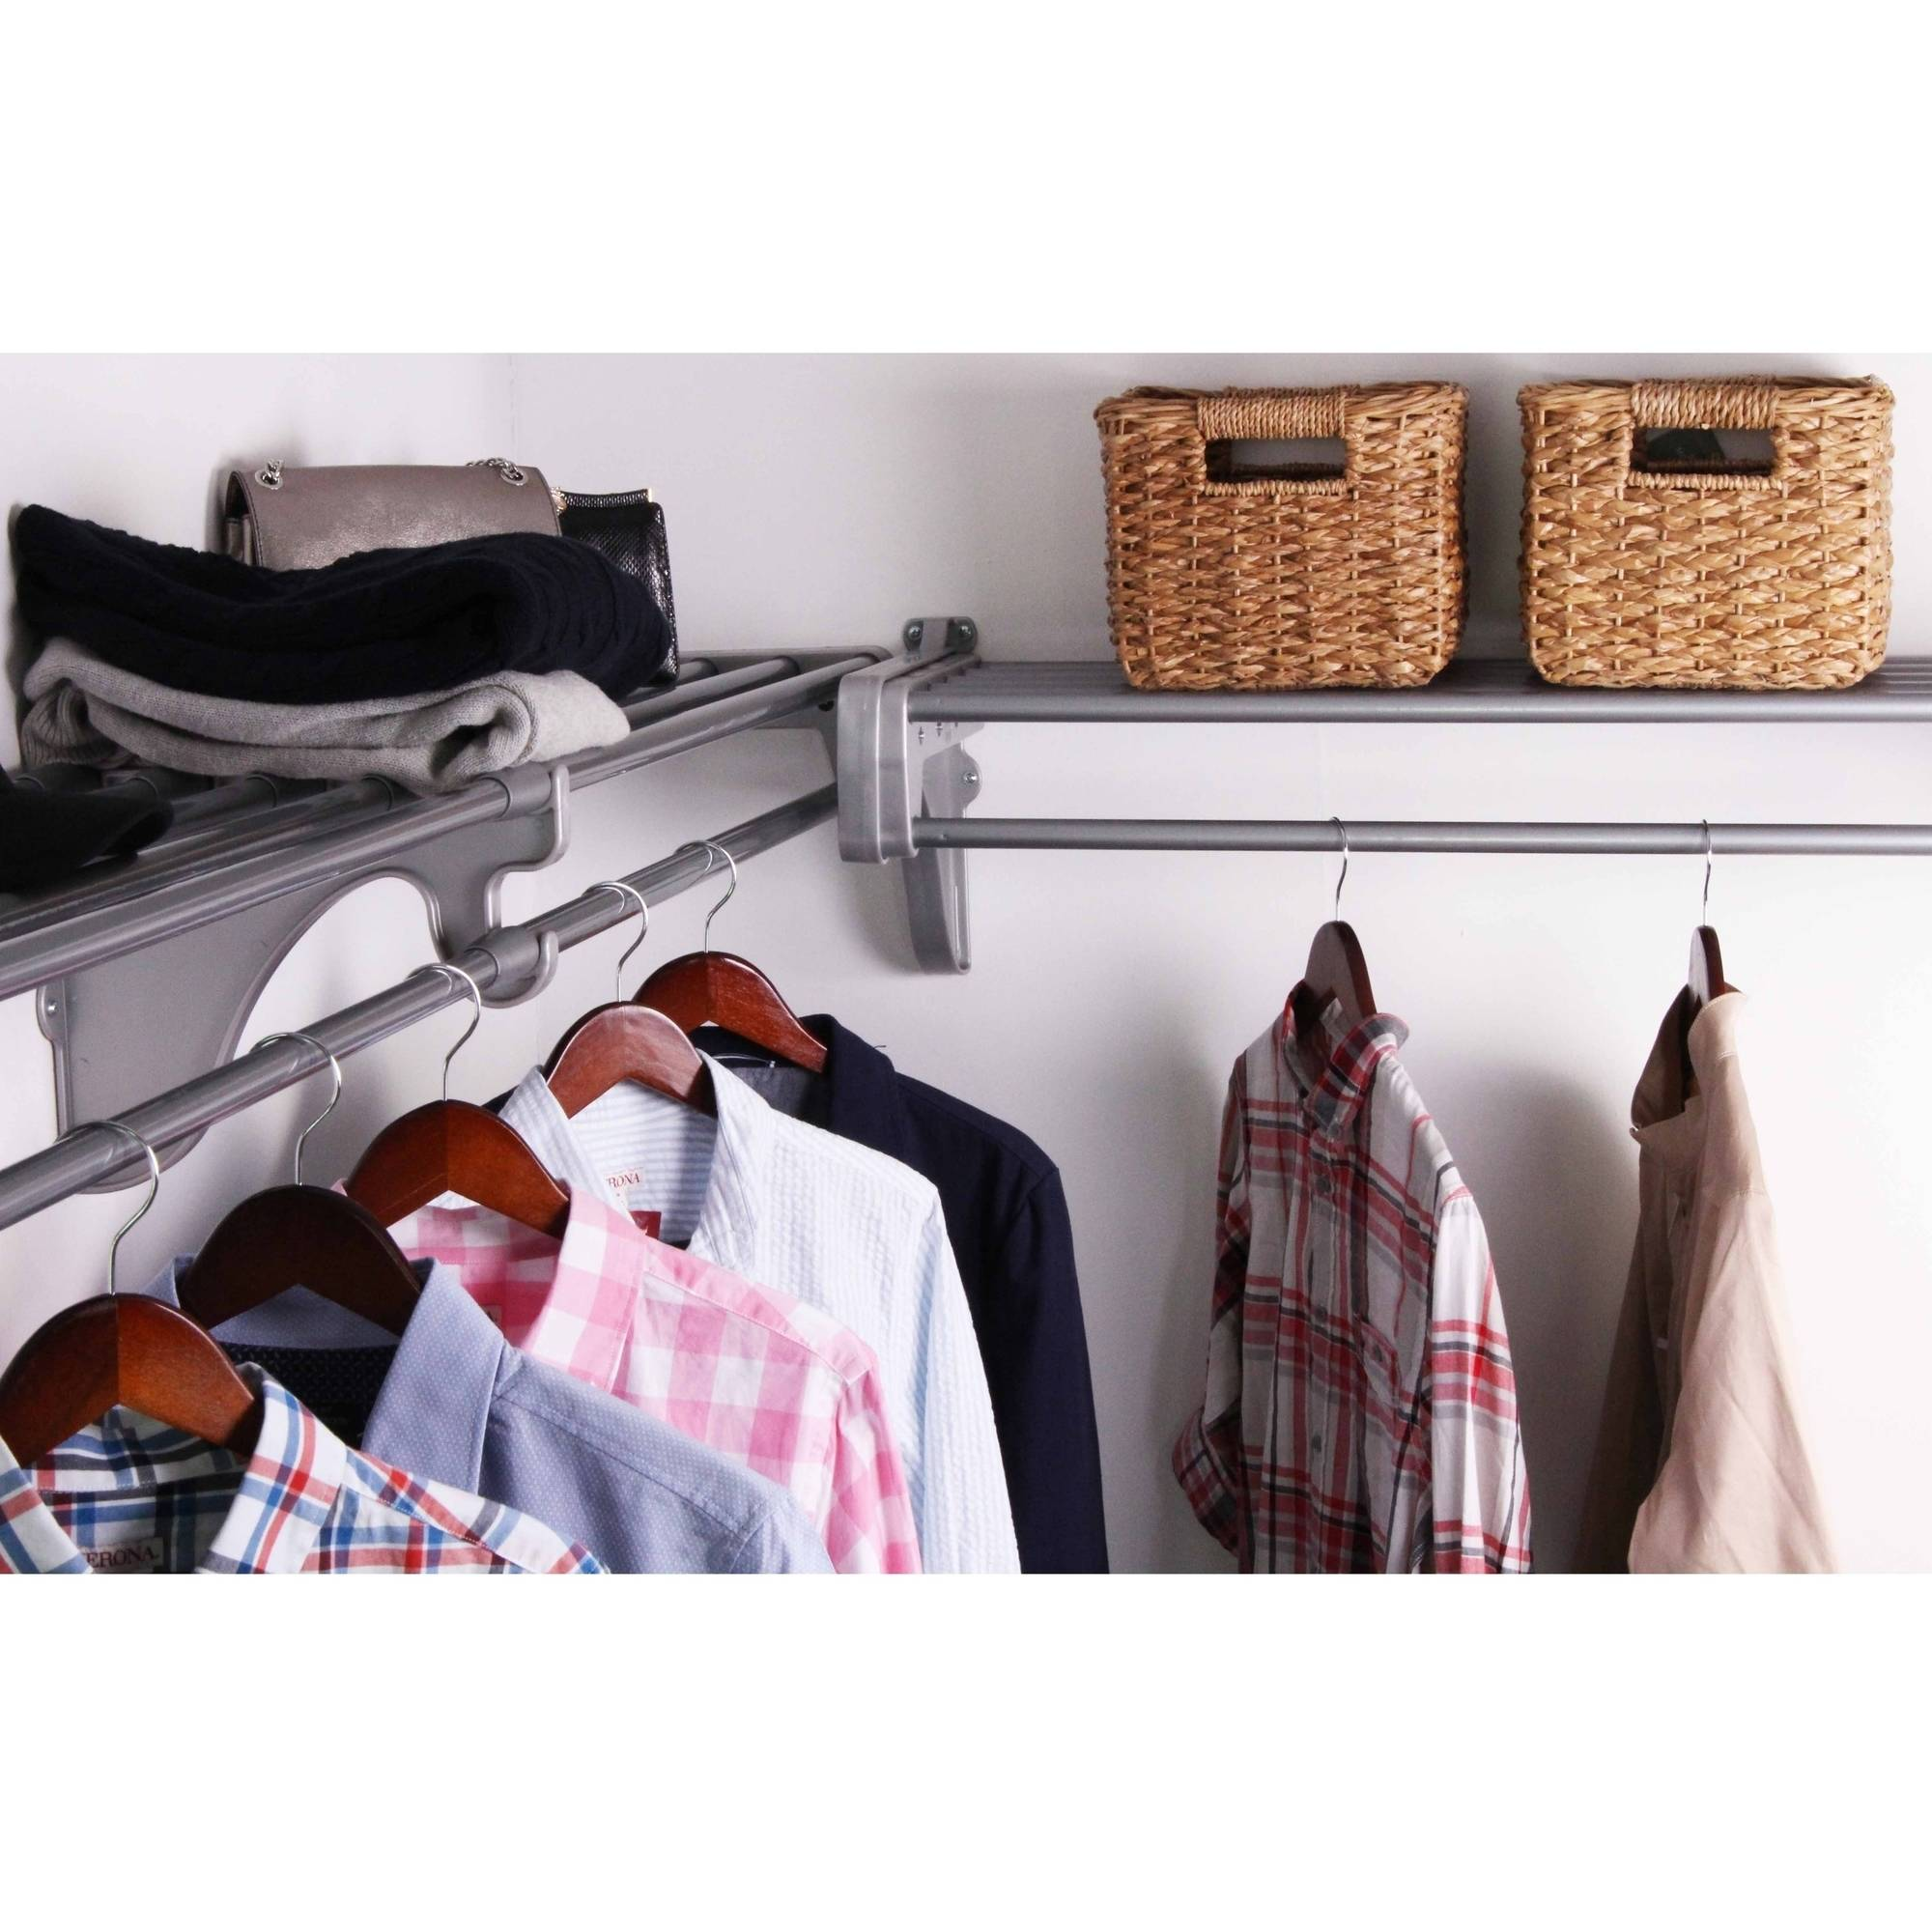 Merveilleux EZ Shelf 12u0027 Closet Organizer Kit, Up To 12.2u0027 Of Hanging And Shelf